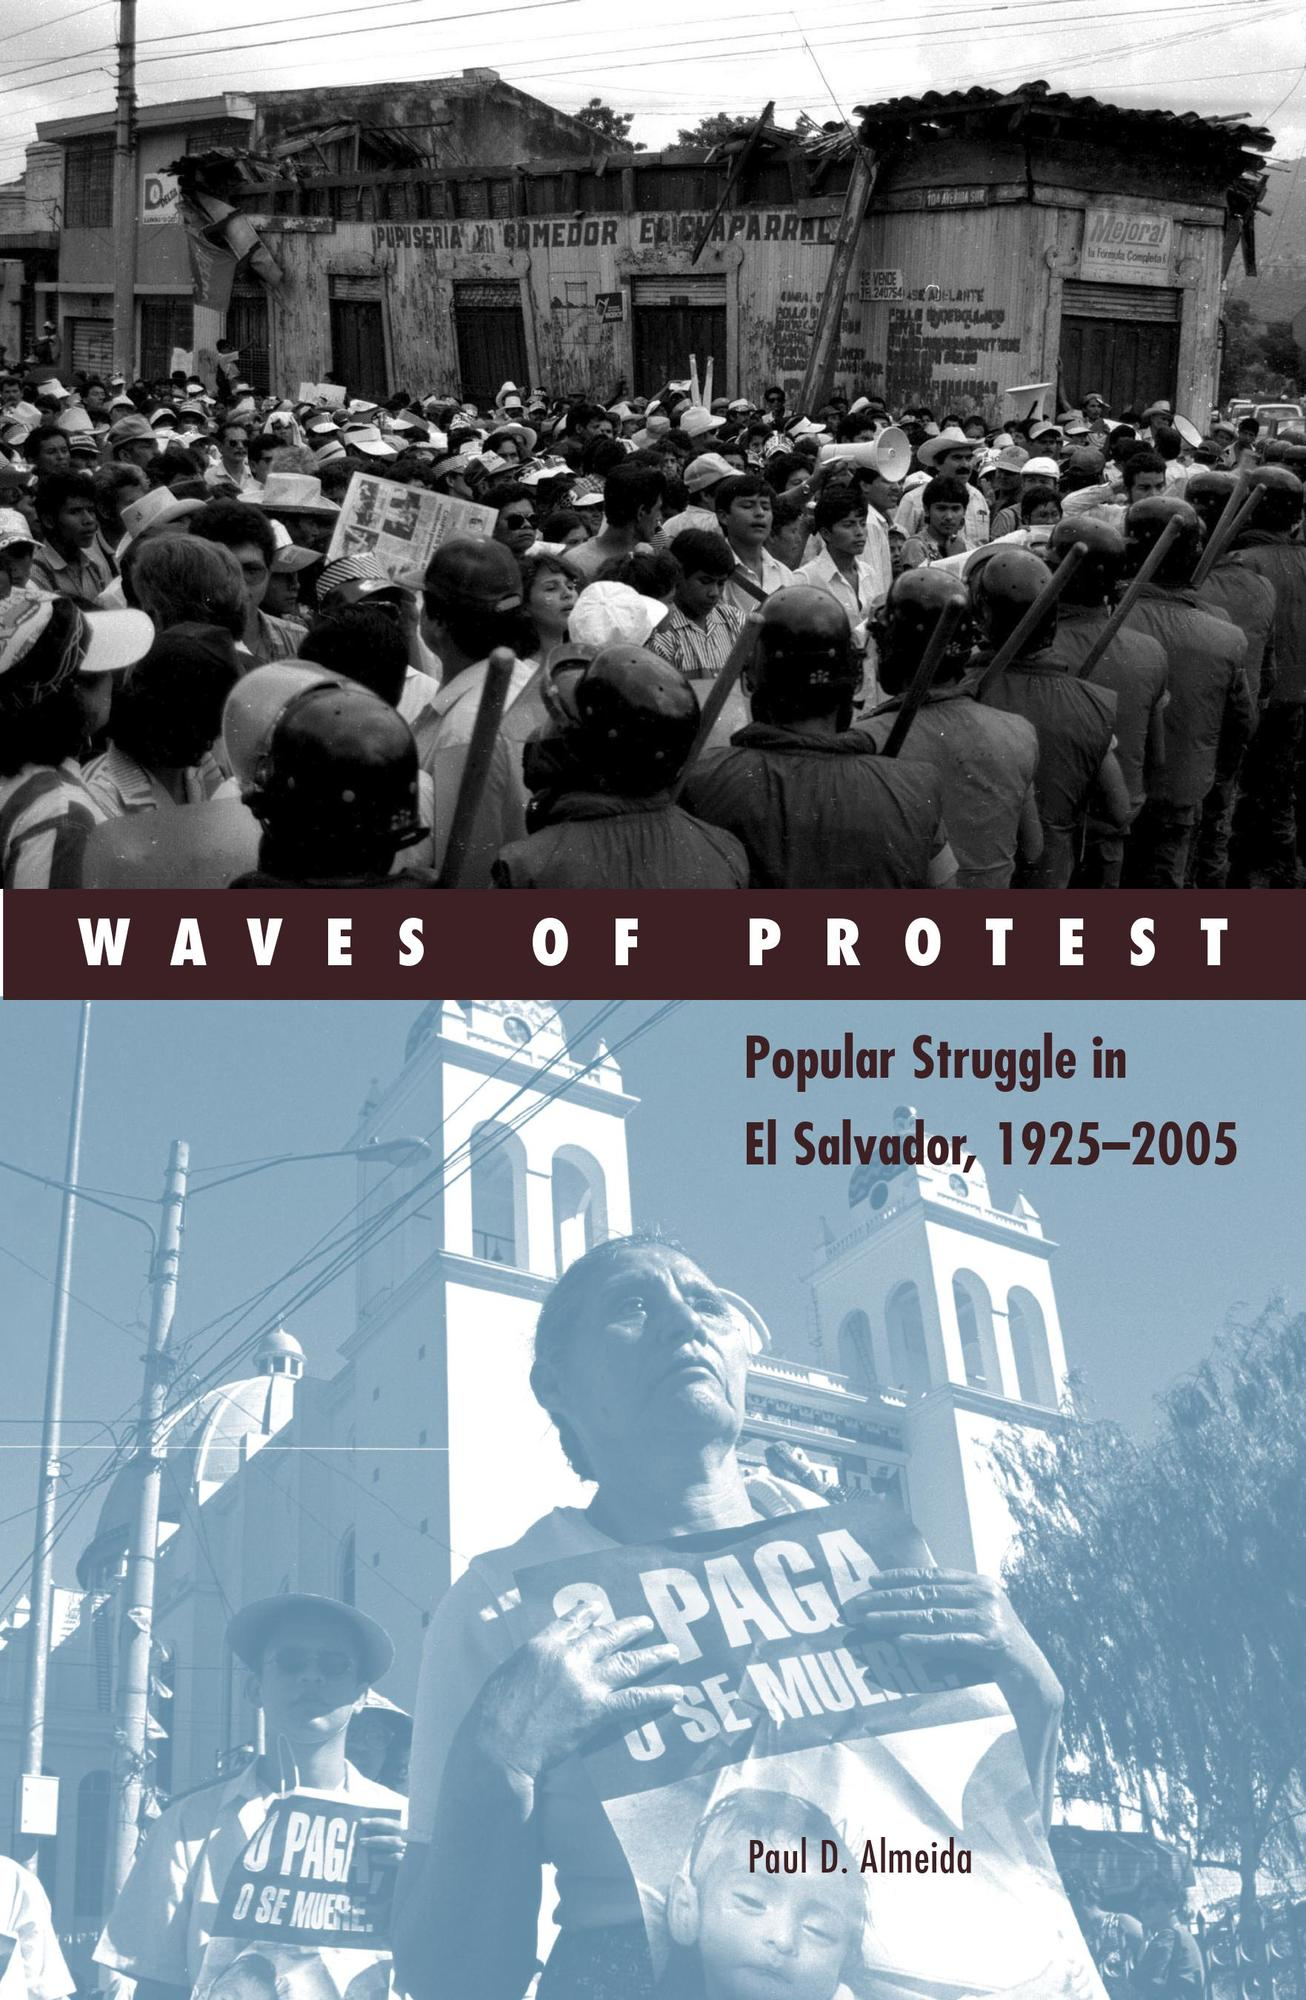 Waves of Protest book cover